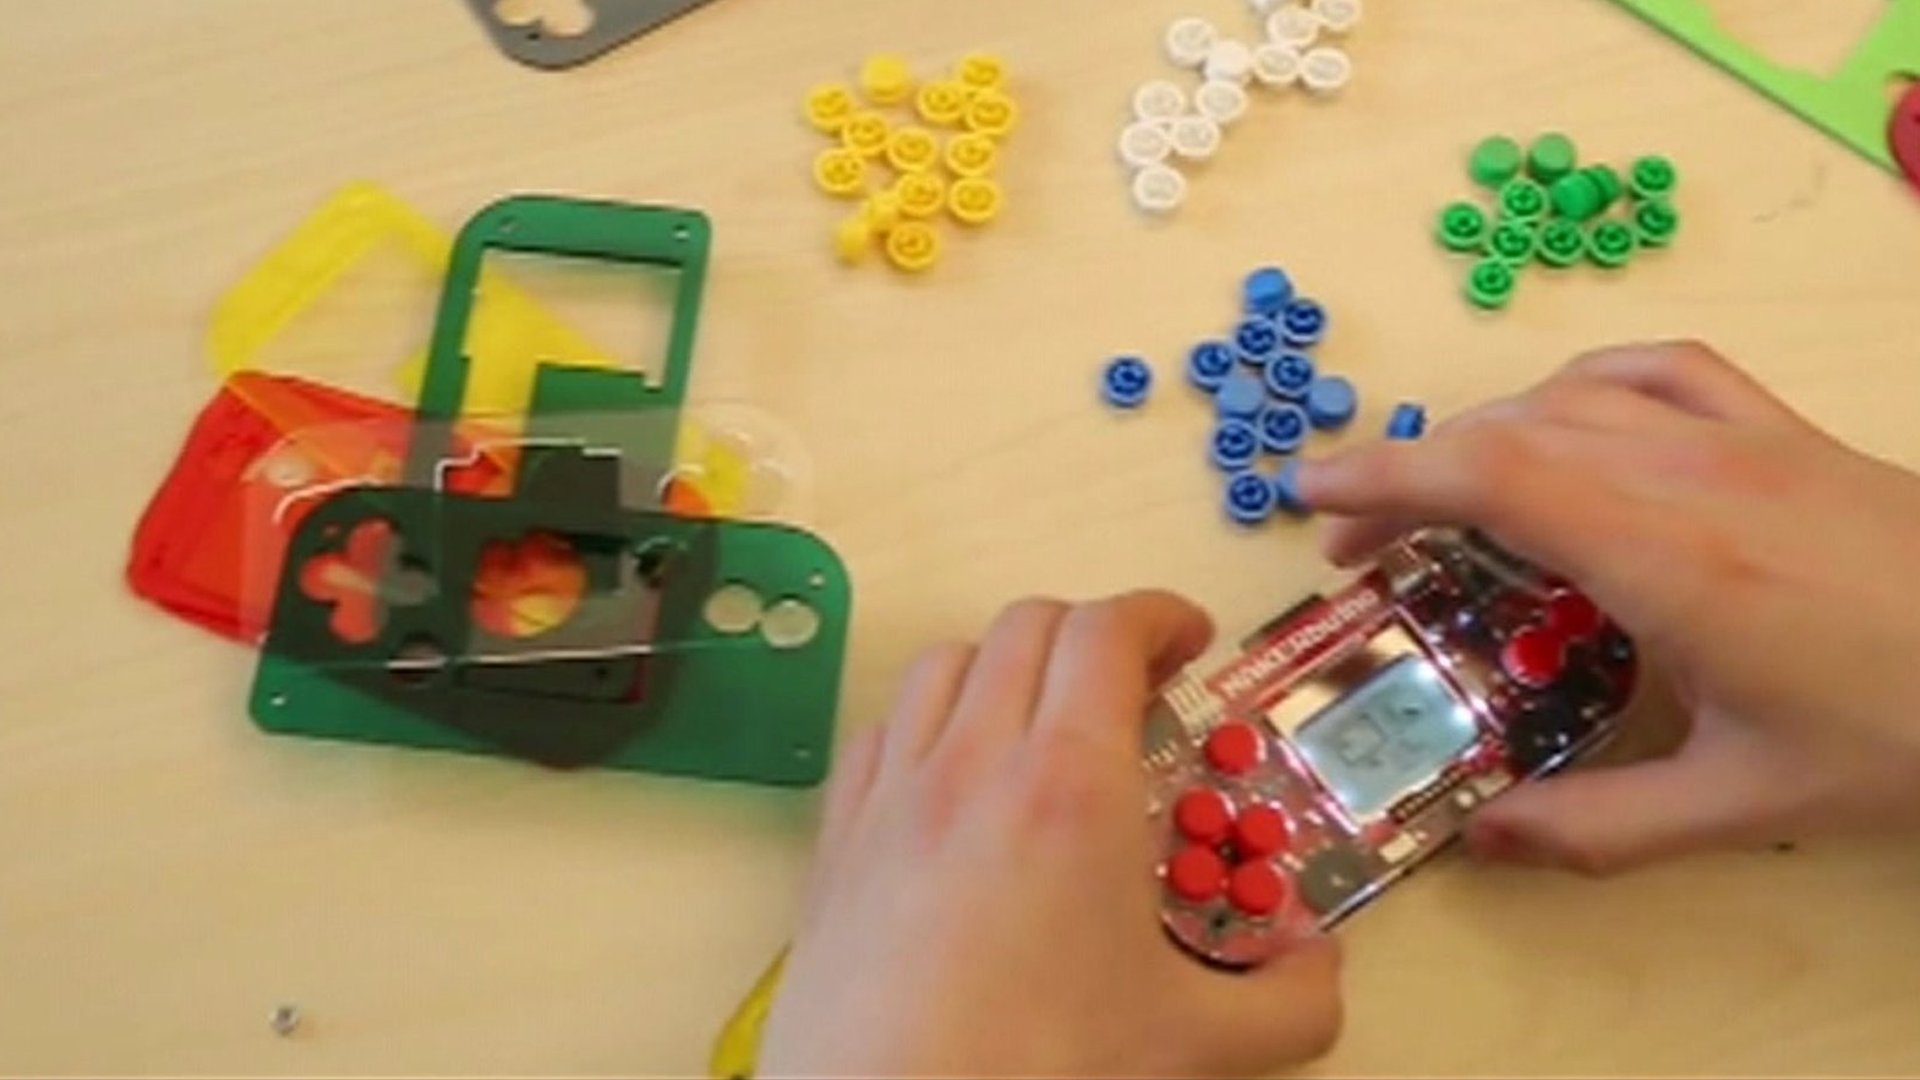 DIY retro games console teaches kids about electronics.